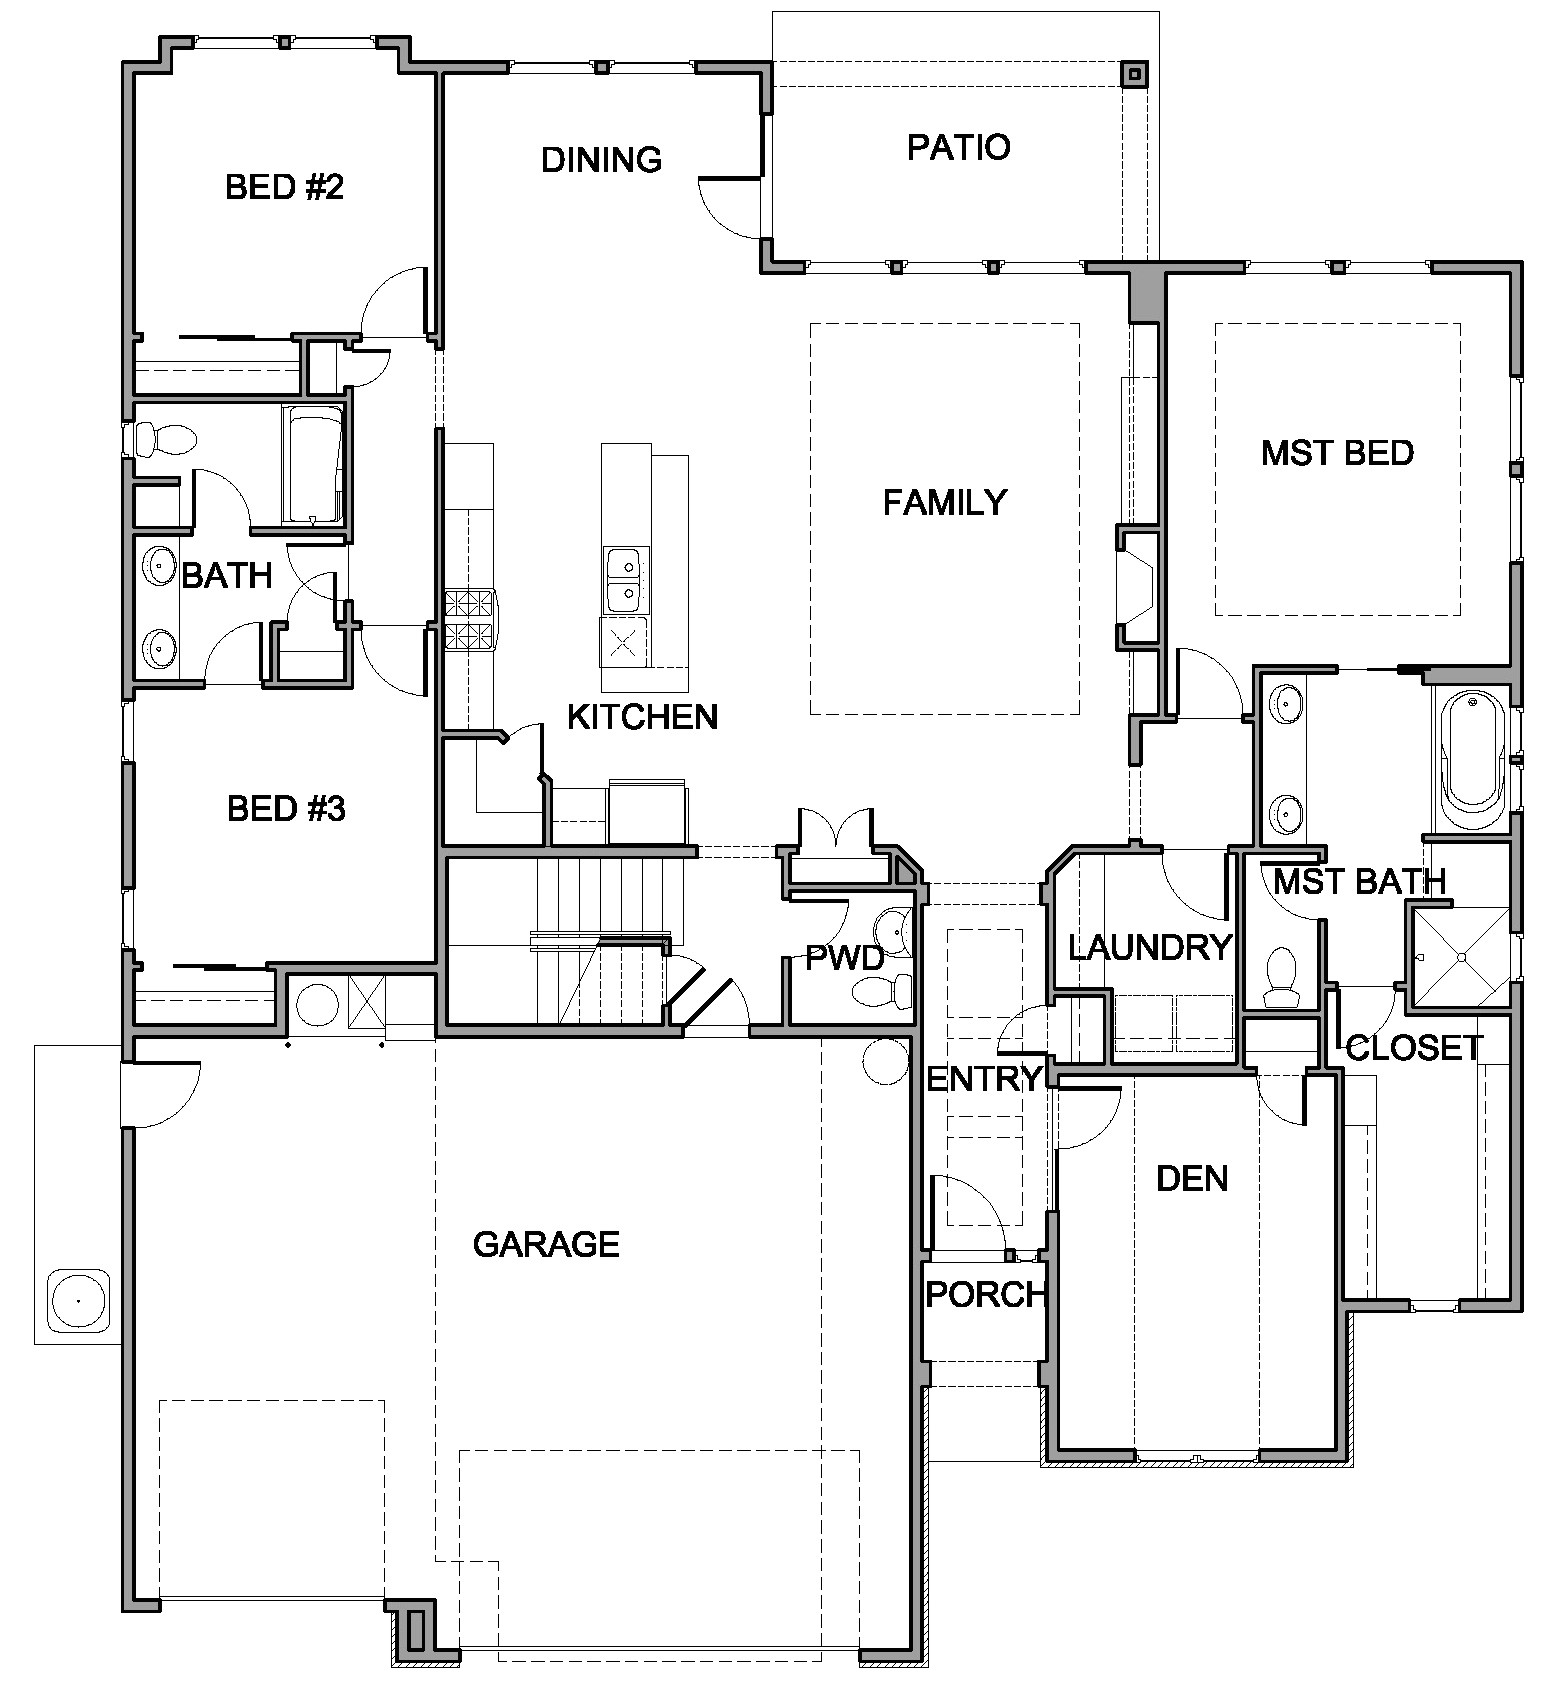 idaho home plans lovely idaho mountain retreat home plan by natural element homes